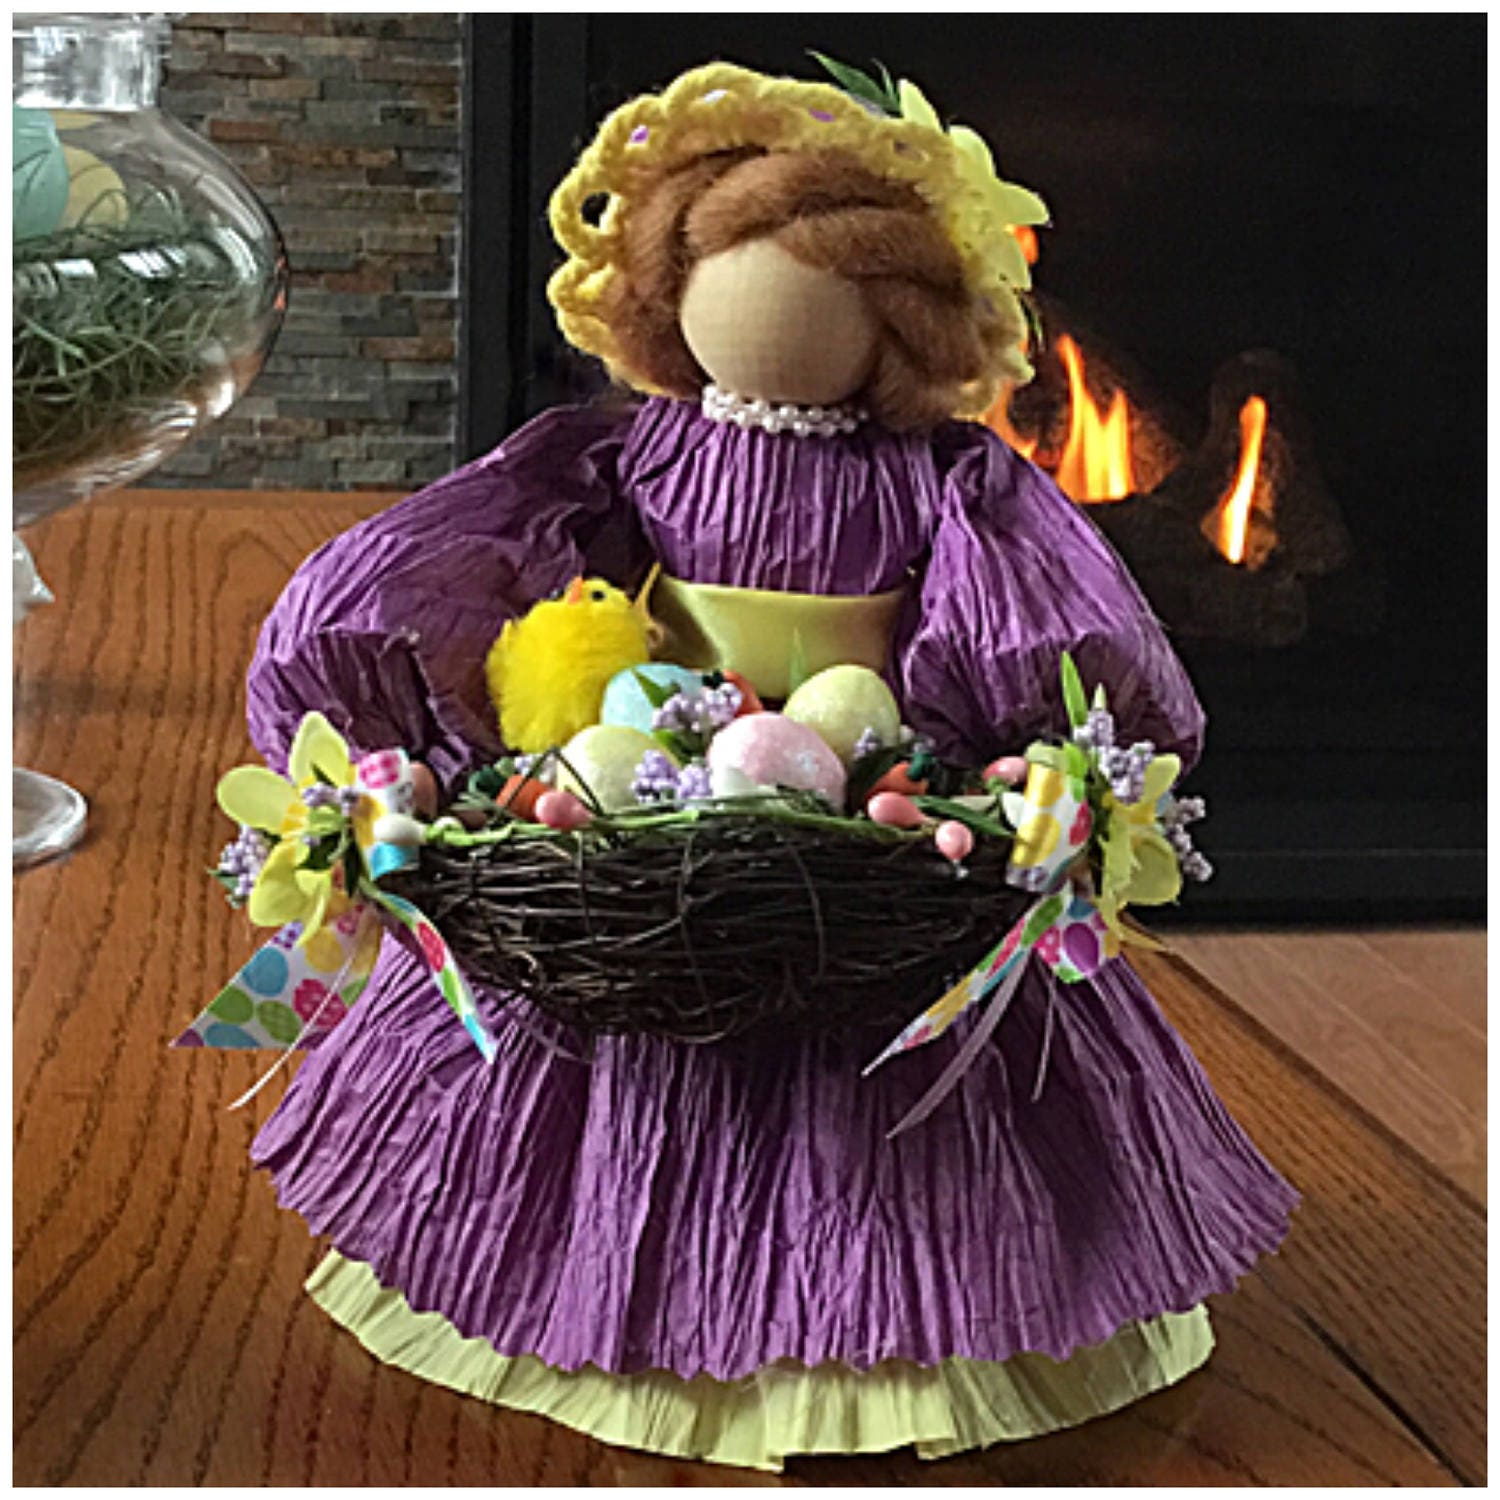 Easter doll easter figurine easter table decor easter nest easter figurine easter table decor easter nest easter bonnet unique gifts for easter flower girl spring figurine spring negle Image collections